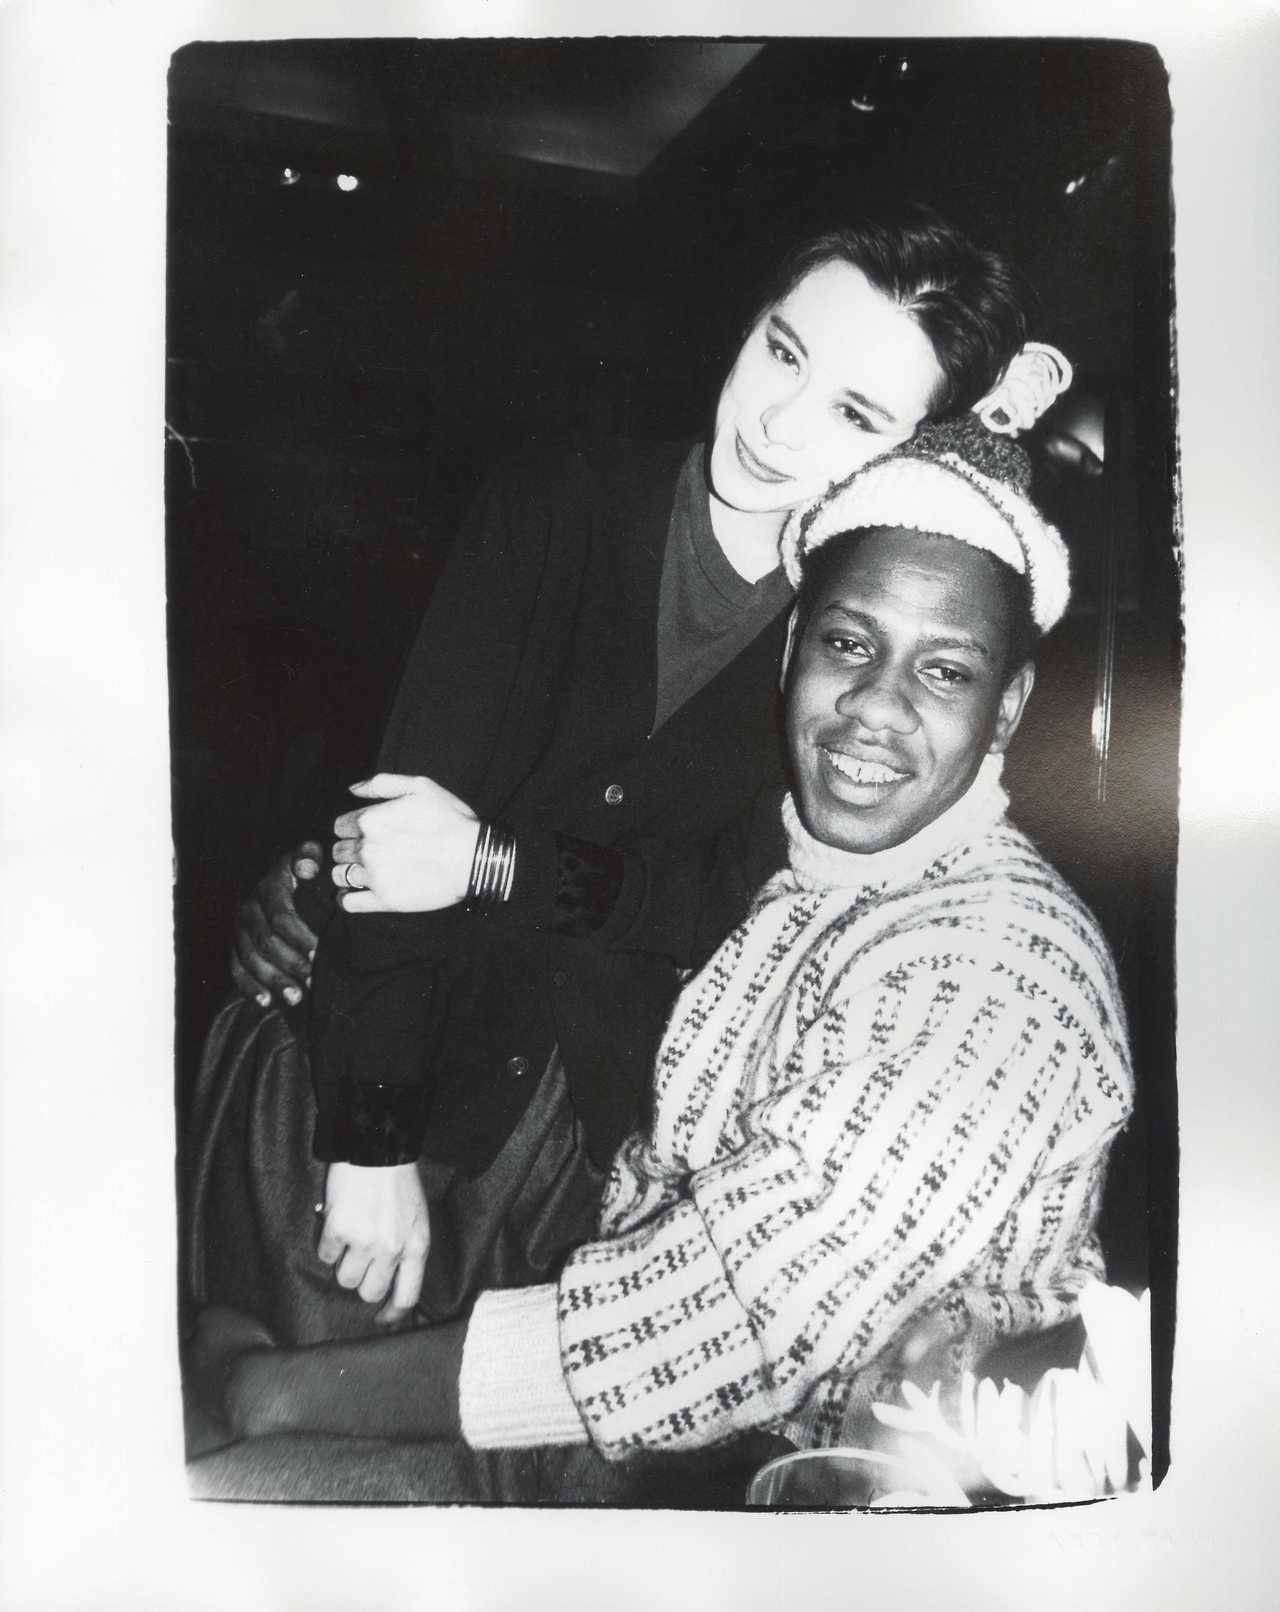 b3061f169 Tina Chow with Andre Leon Talley by Andy Warhol (1980) – Vintage Stuff